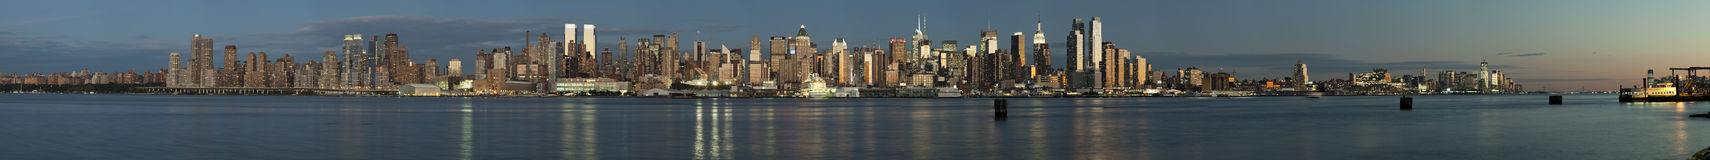 New York City, USA - Panorama from Uptown to Downtown Stock Photo